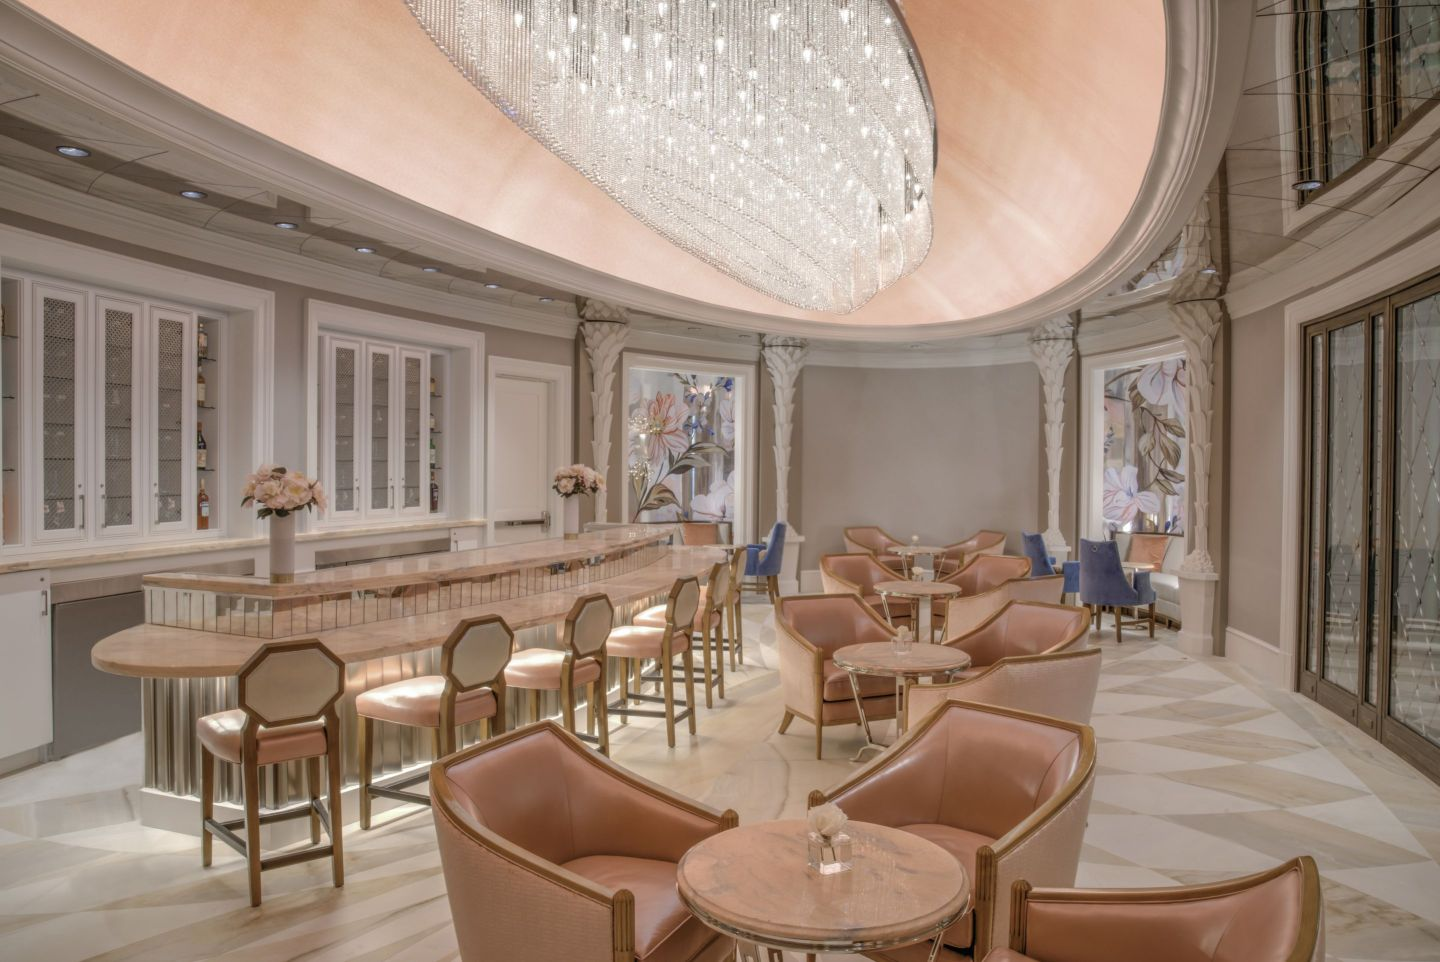 Camellias_Final_Credit-Modus-Photography-1440x962 Design Tour: Hotel Bennett Debuts in Charleston, SC